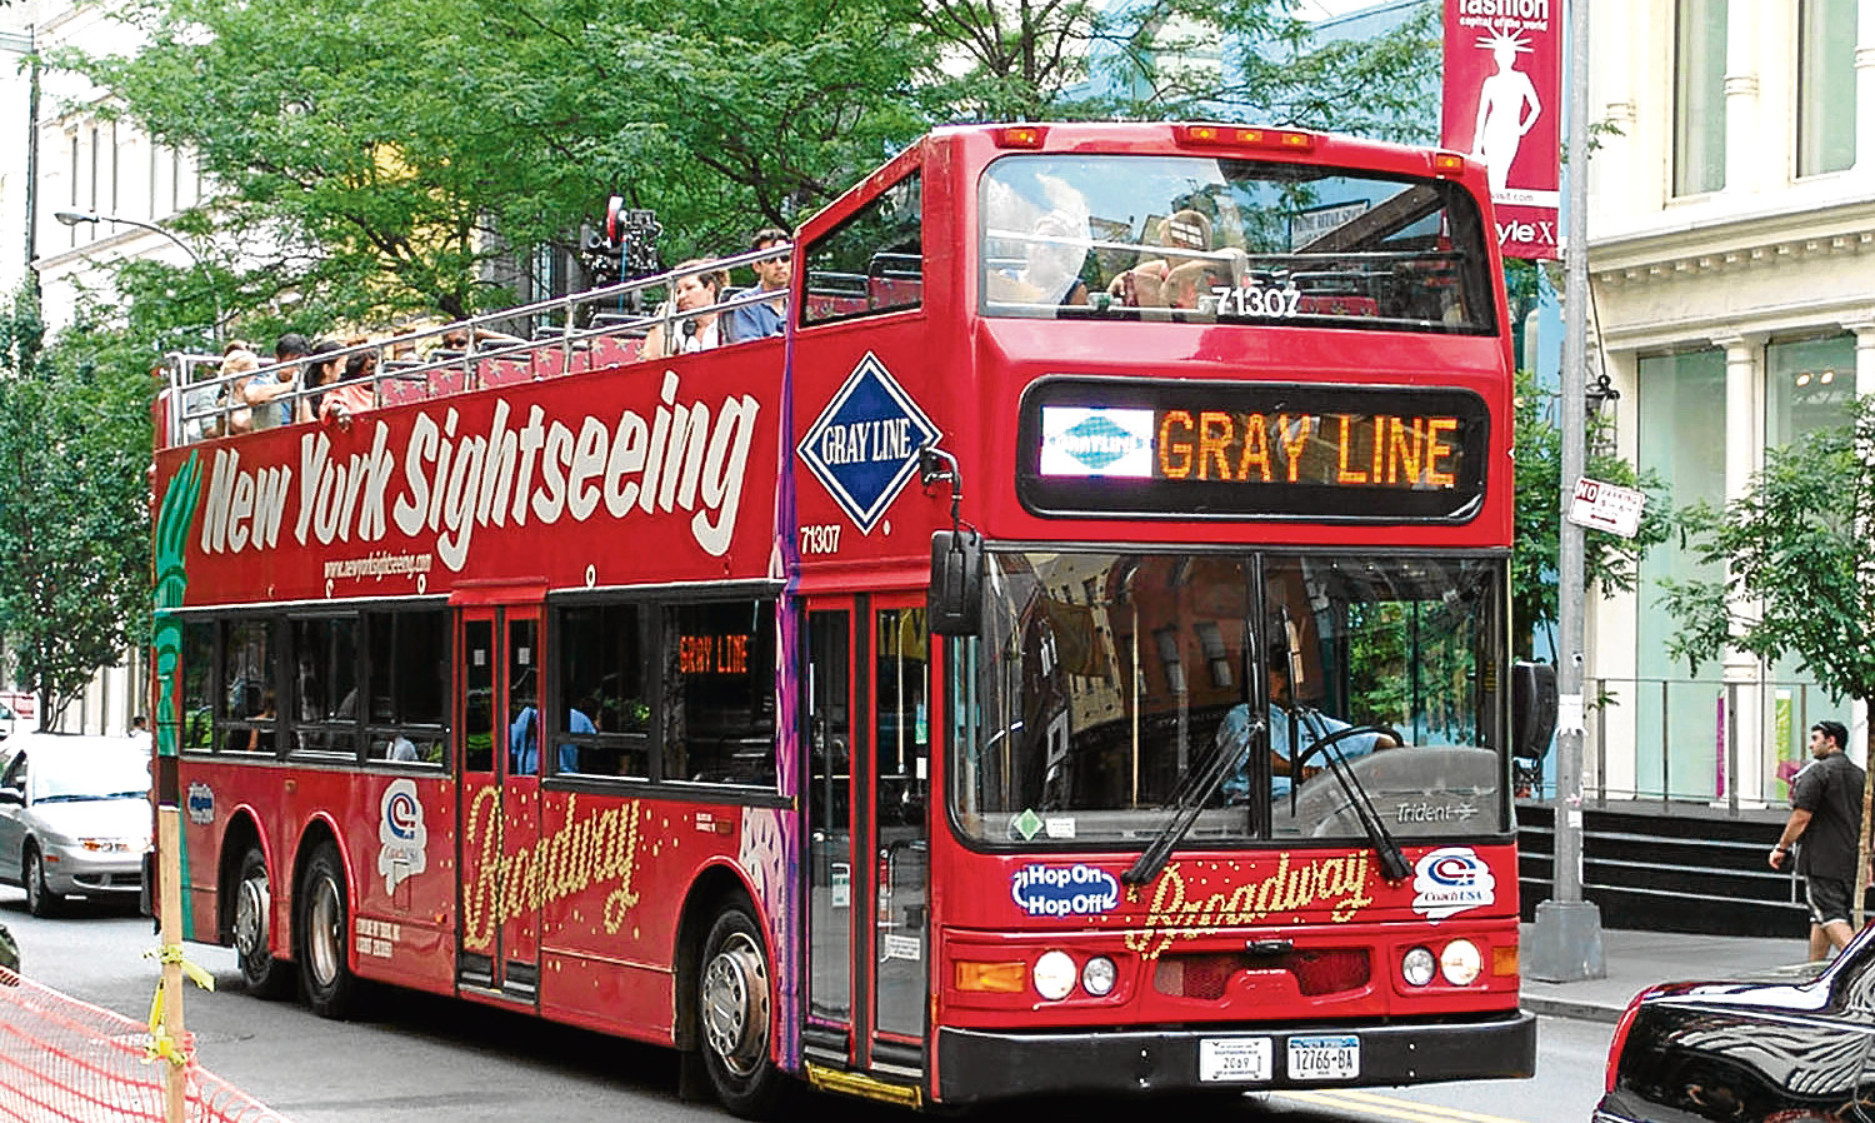 Twin America operates the Gray Line  sightseeing tour business in New York